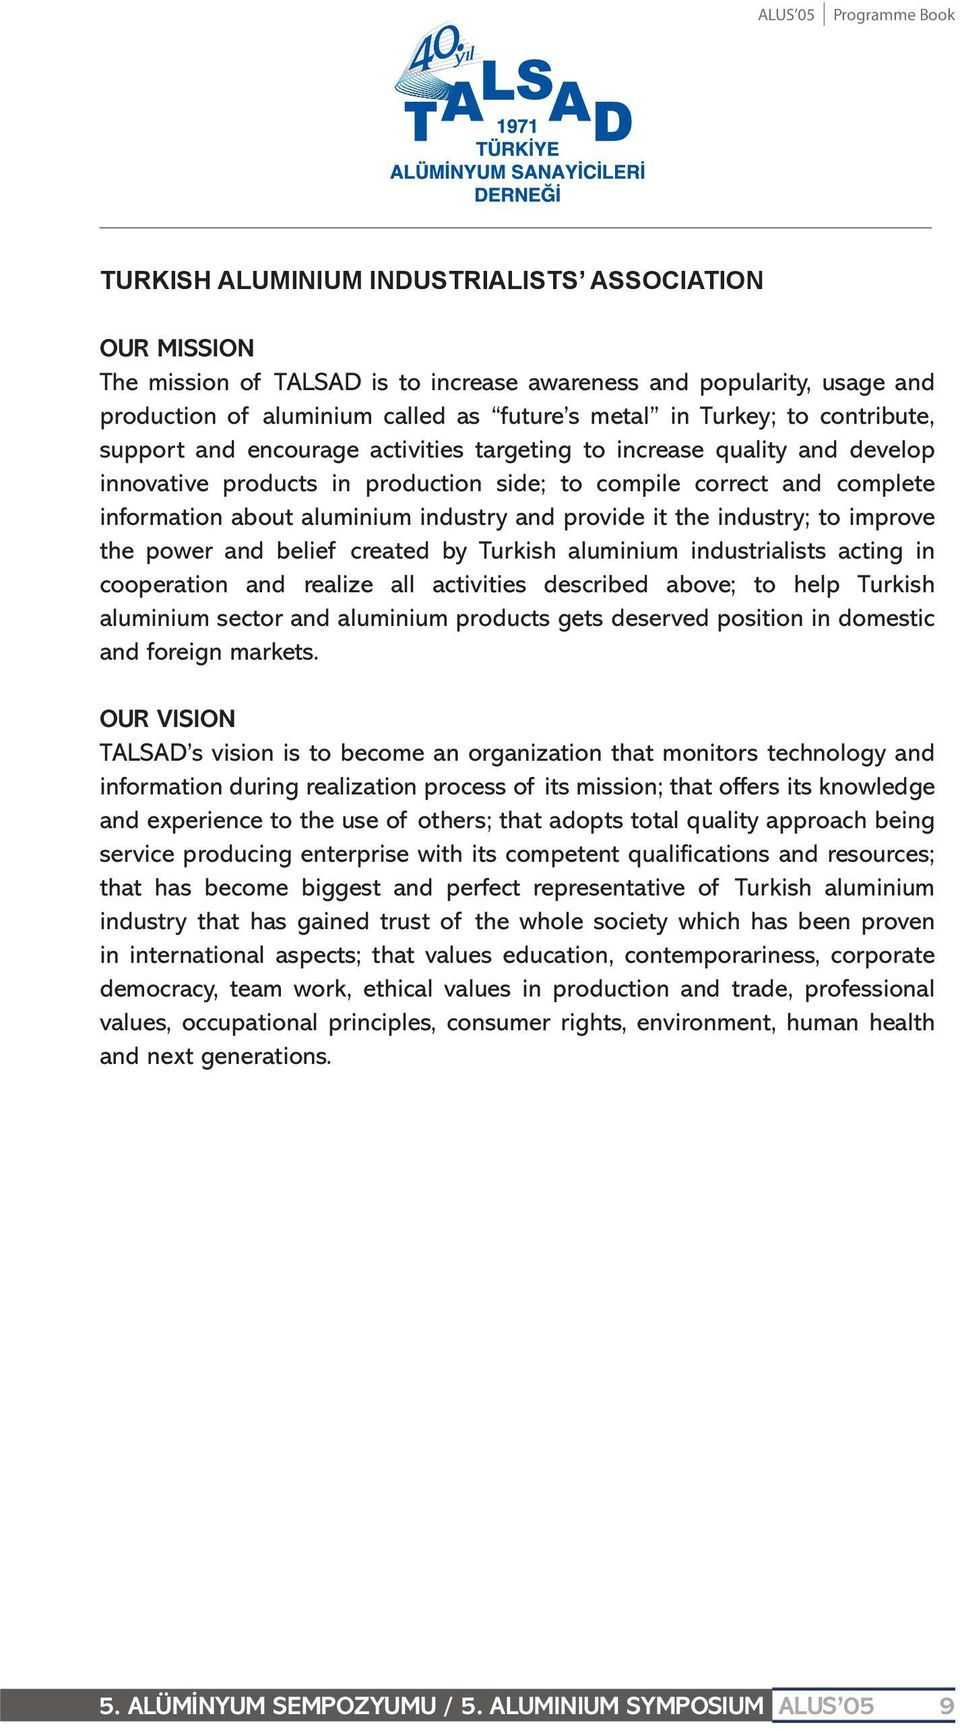 aluminium industry and provide it the industry; to improve the power and belief created by Turkish aluminium industrialists acting in cooperation and realize all activities described above; to help